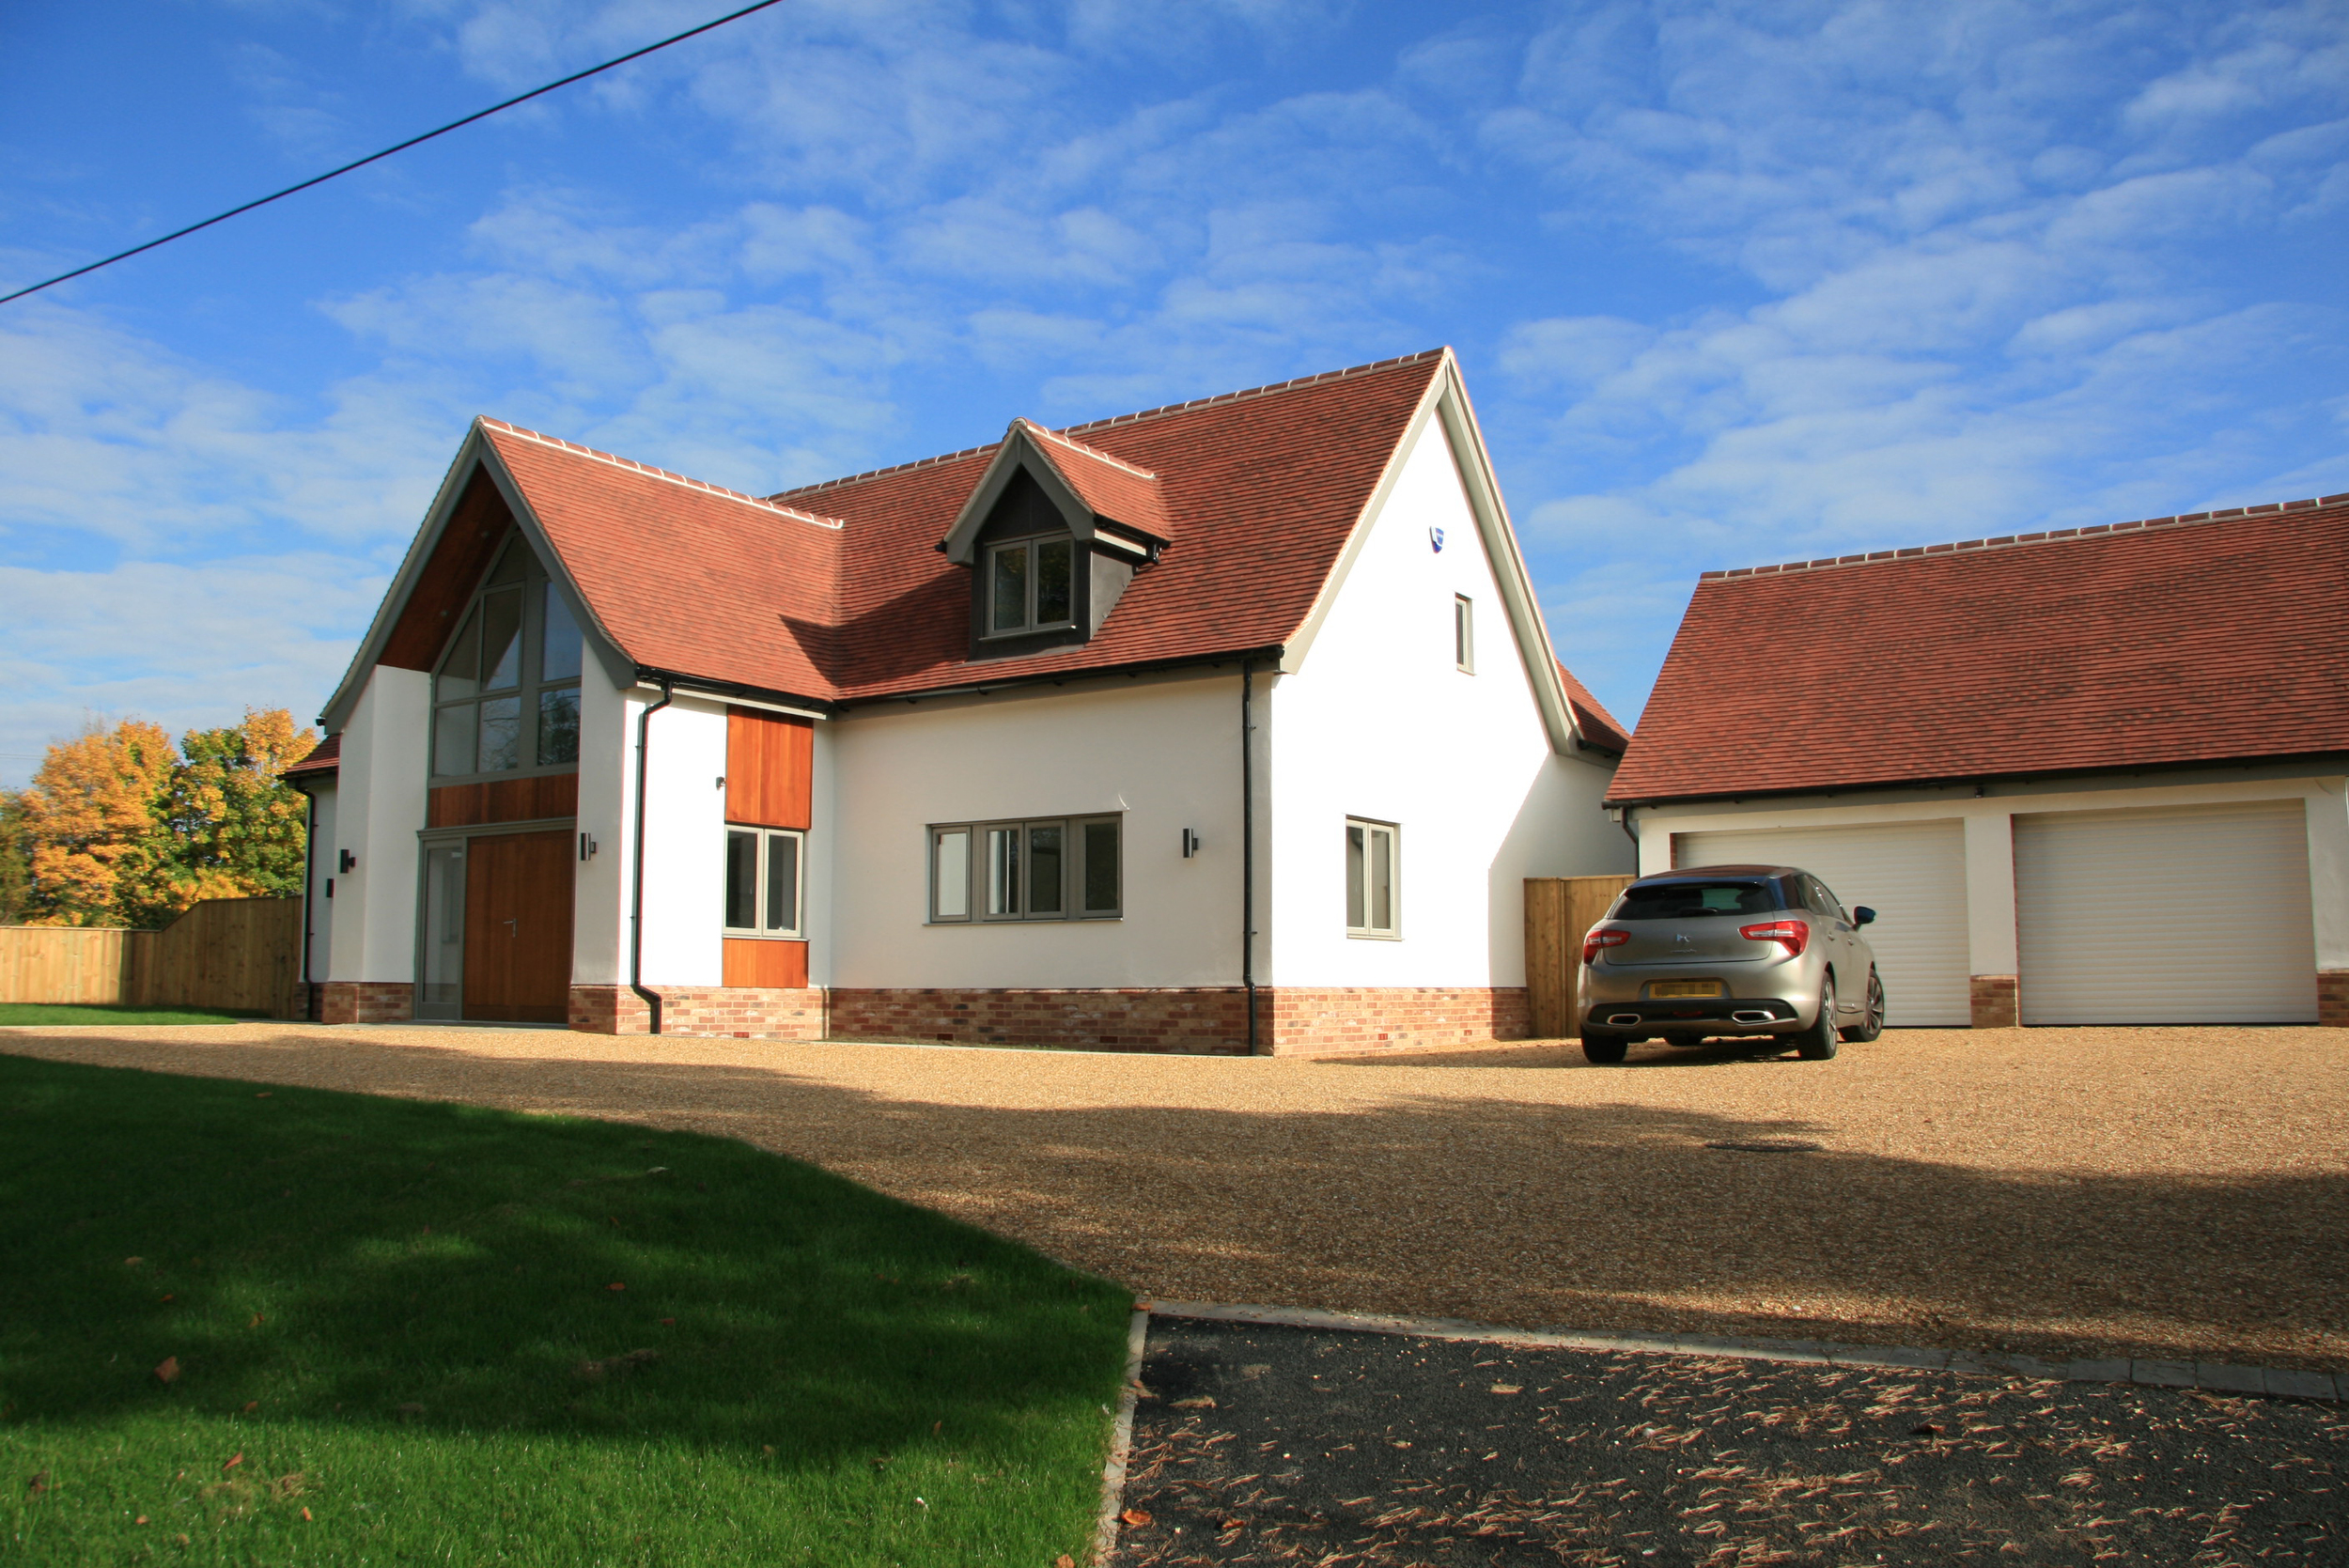 Demolition of existing bungalow and replacement with a modern, attractive 4 bedroom dwelling at Calais Street, Boxford.